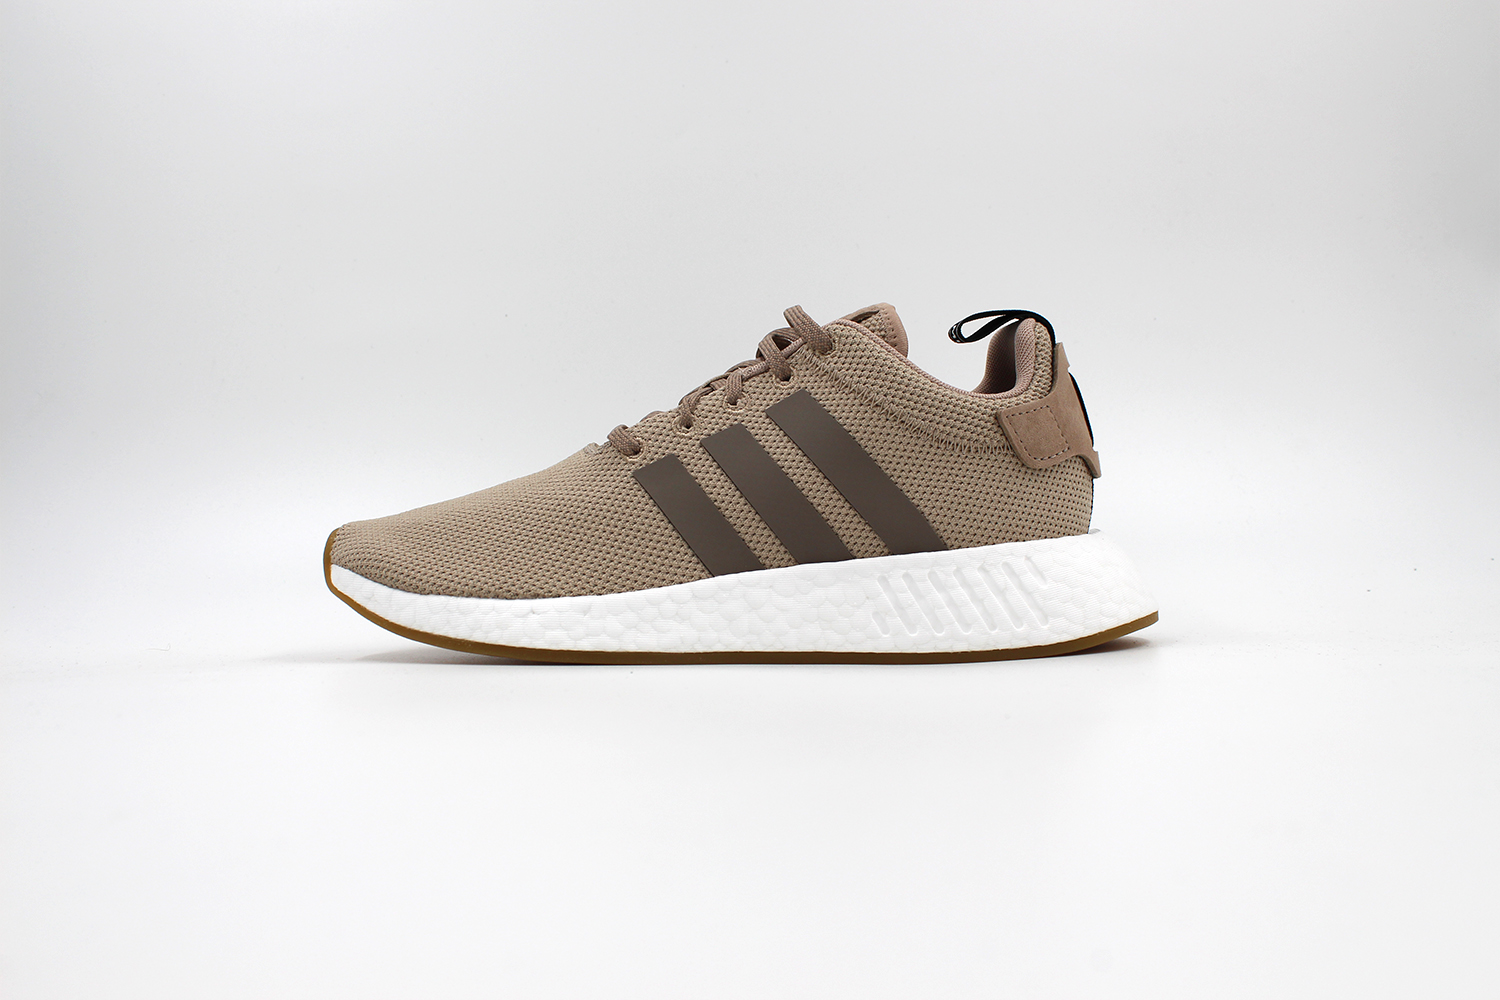 adidas nmd r2 beige by9916 sapato sneakerstore. Black Bedroom Furniture Sets. Home Design Ideas